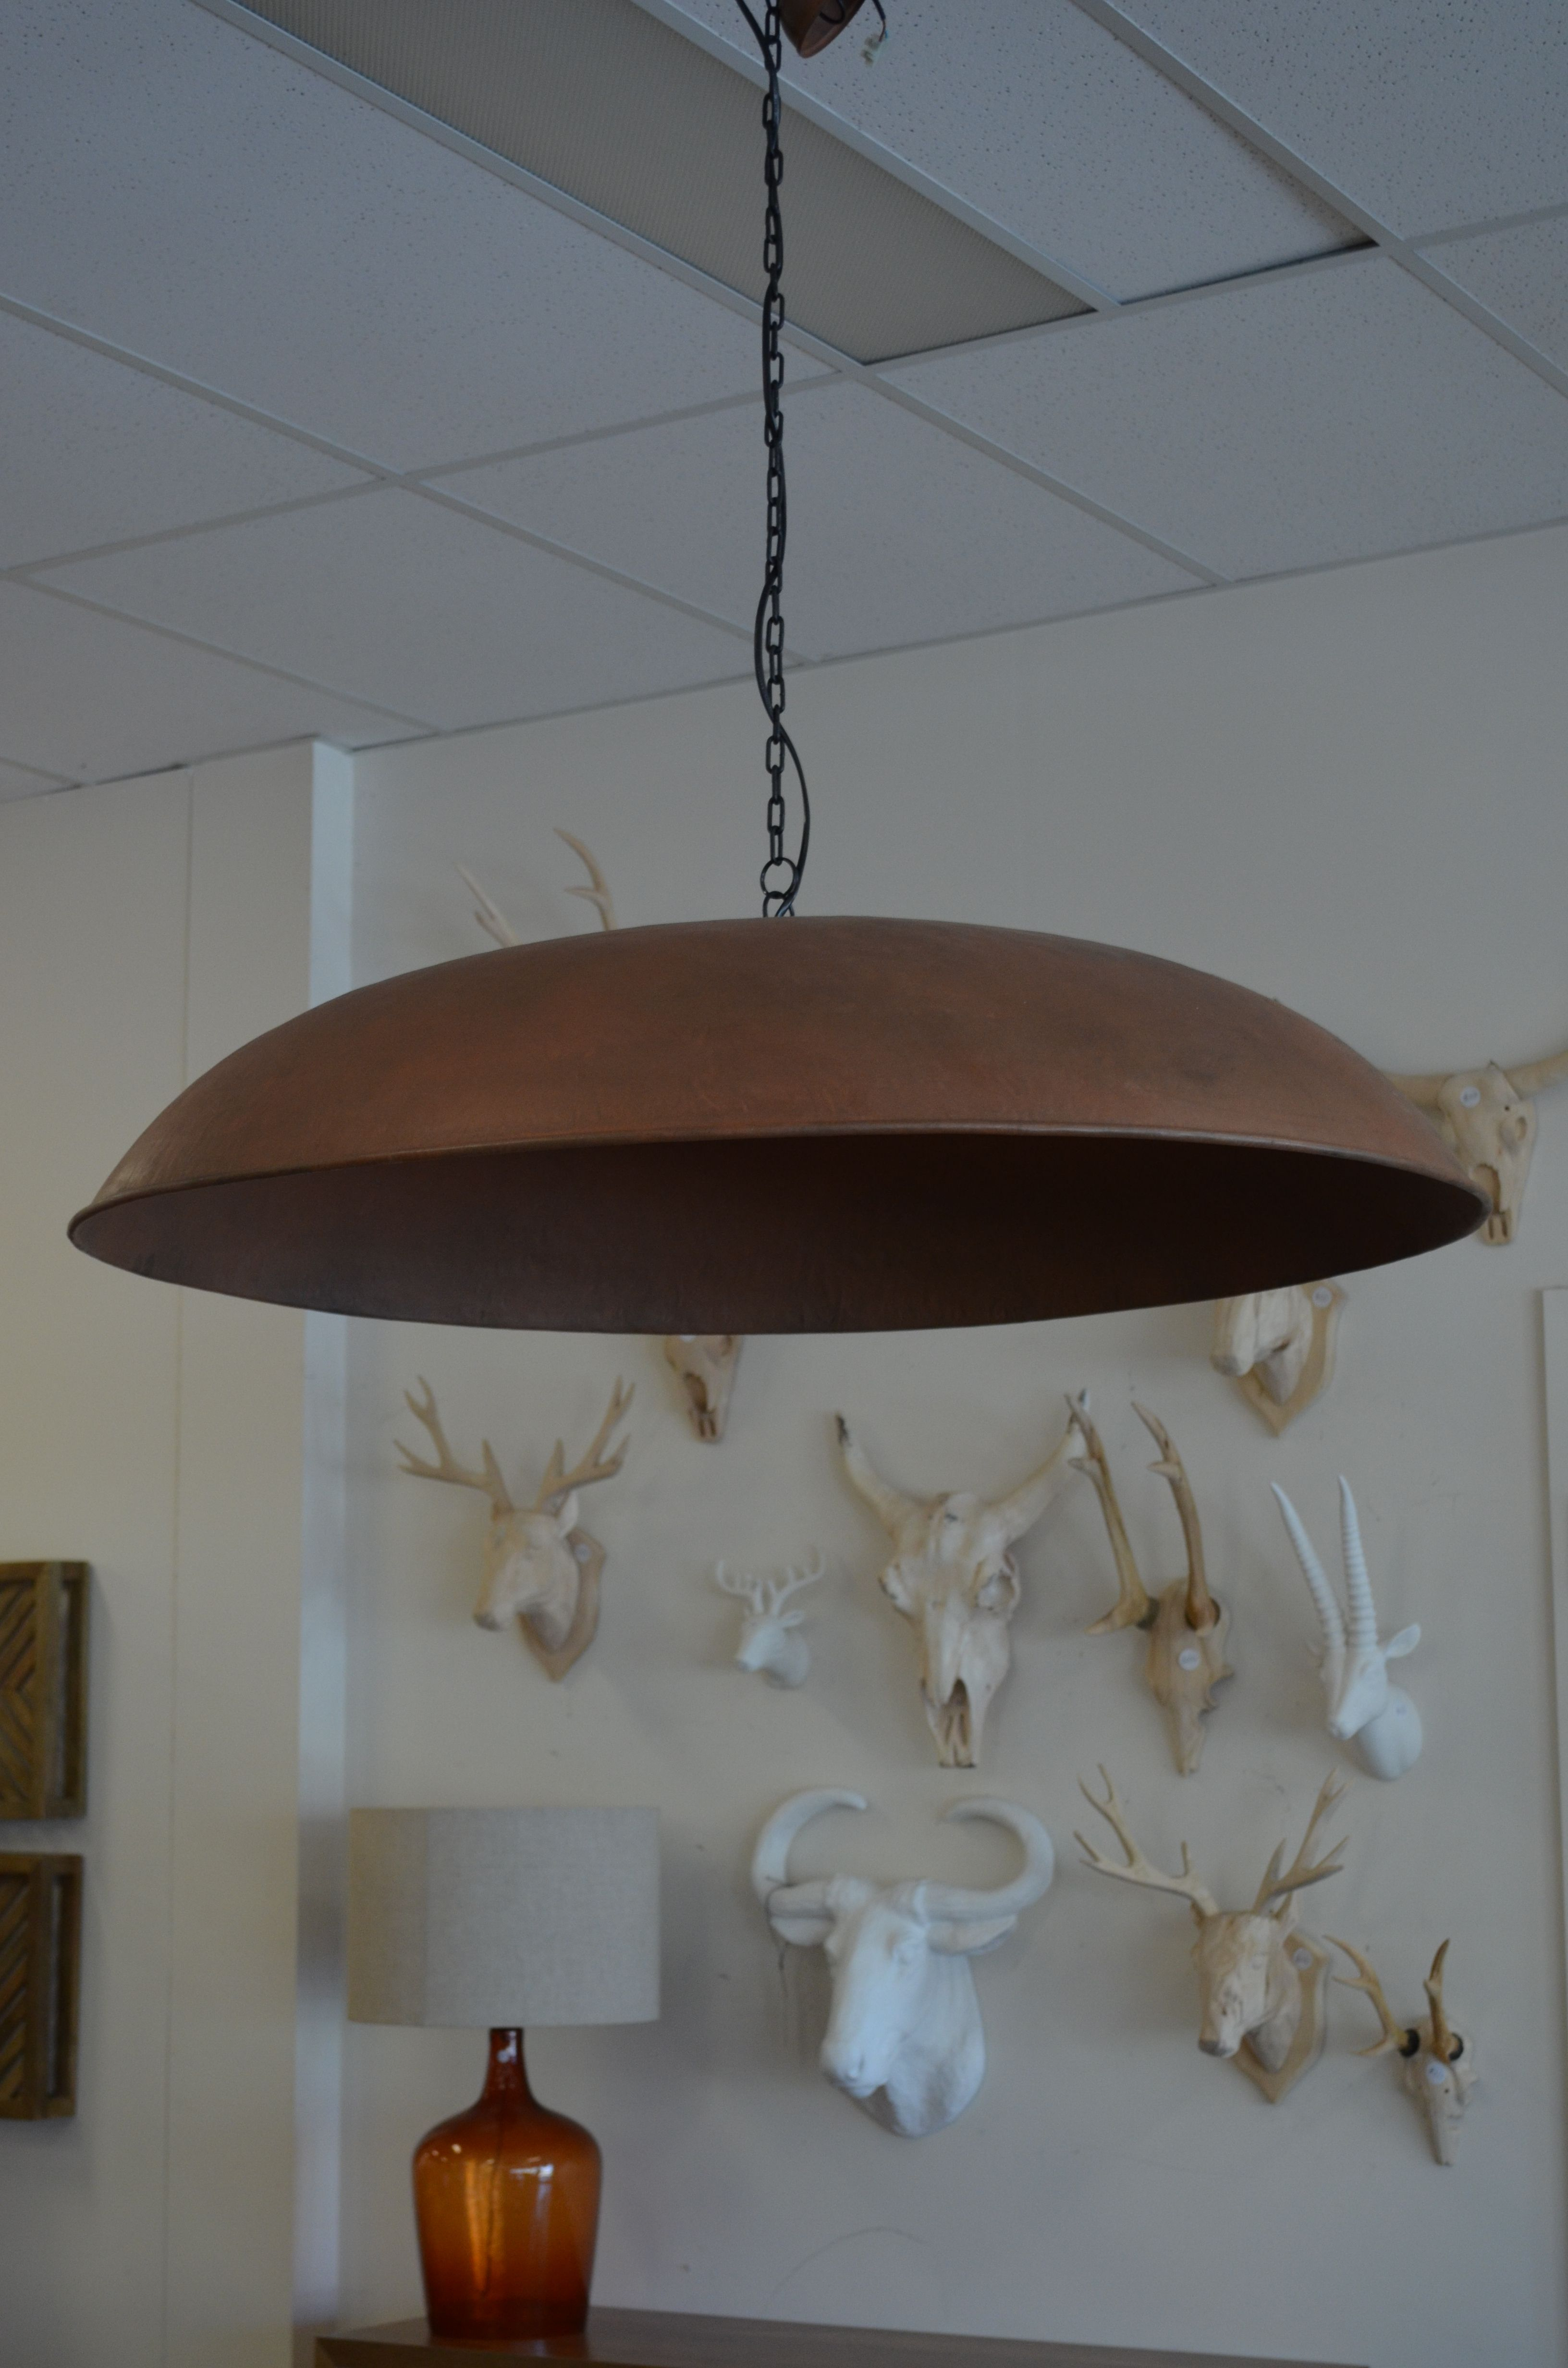 The hero piece this enormous industrial iron light shade looks